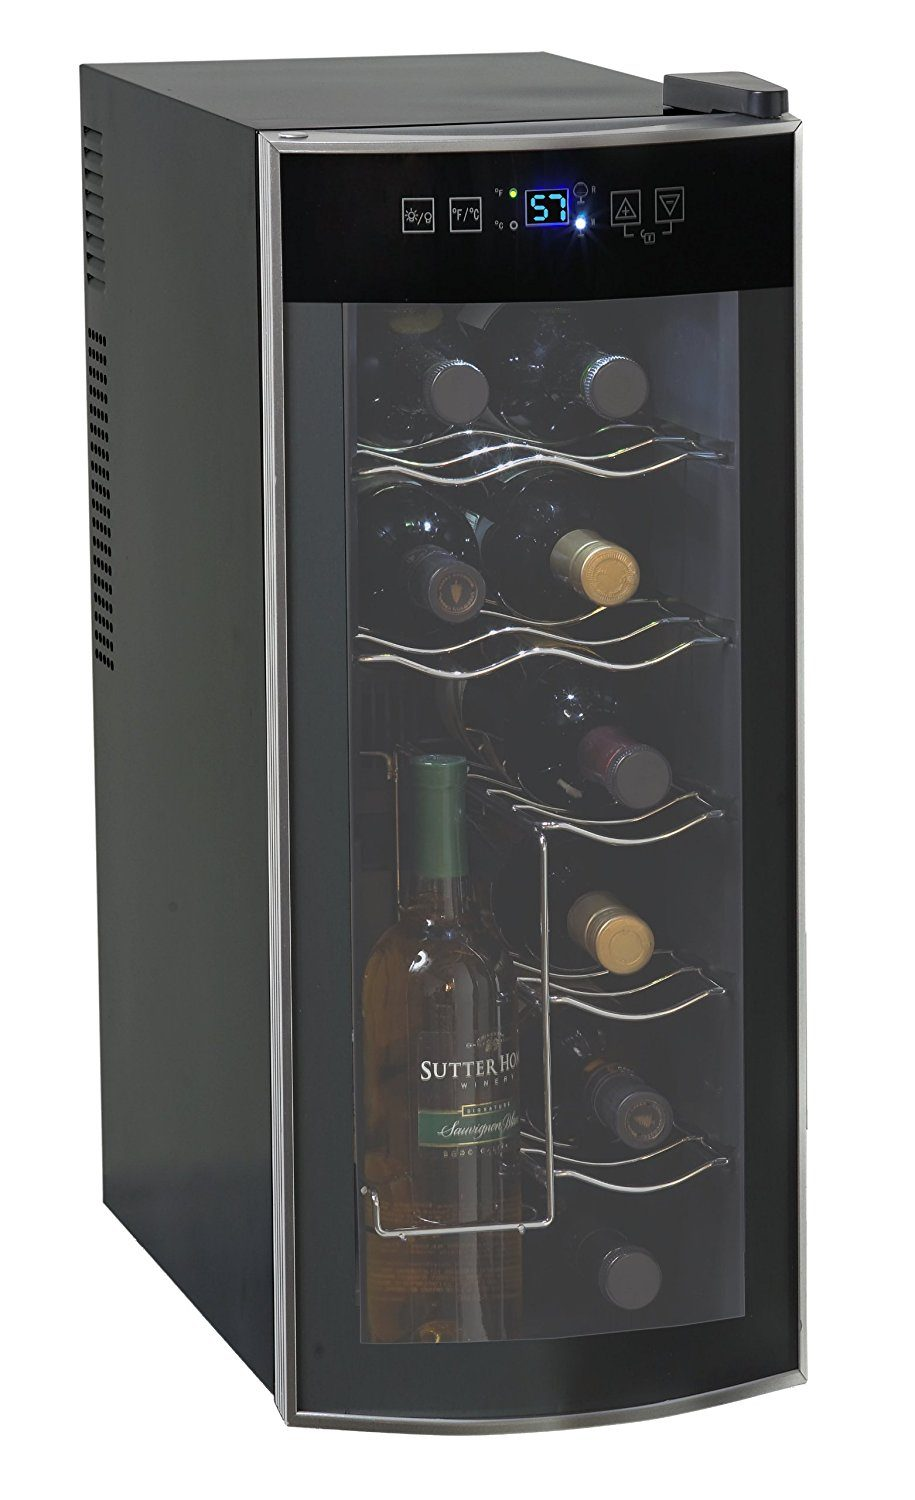 Avanti 12 Bottle Thermoelectric Wine Cooler review